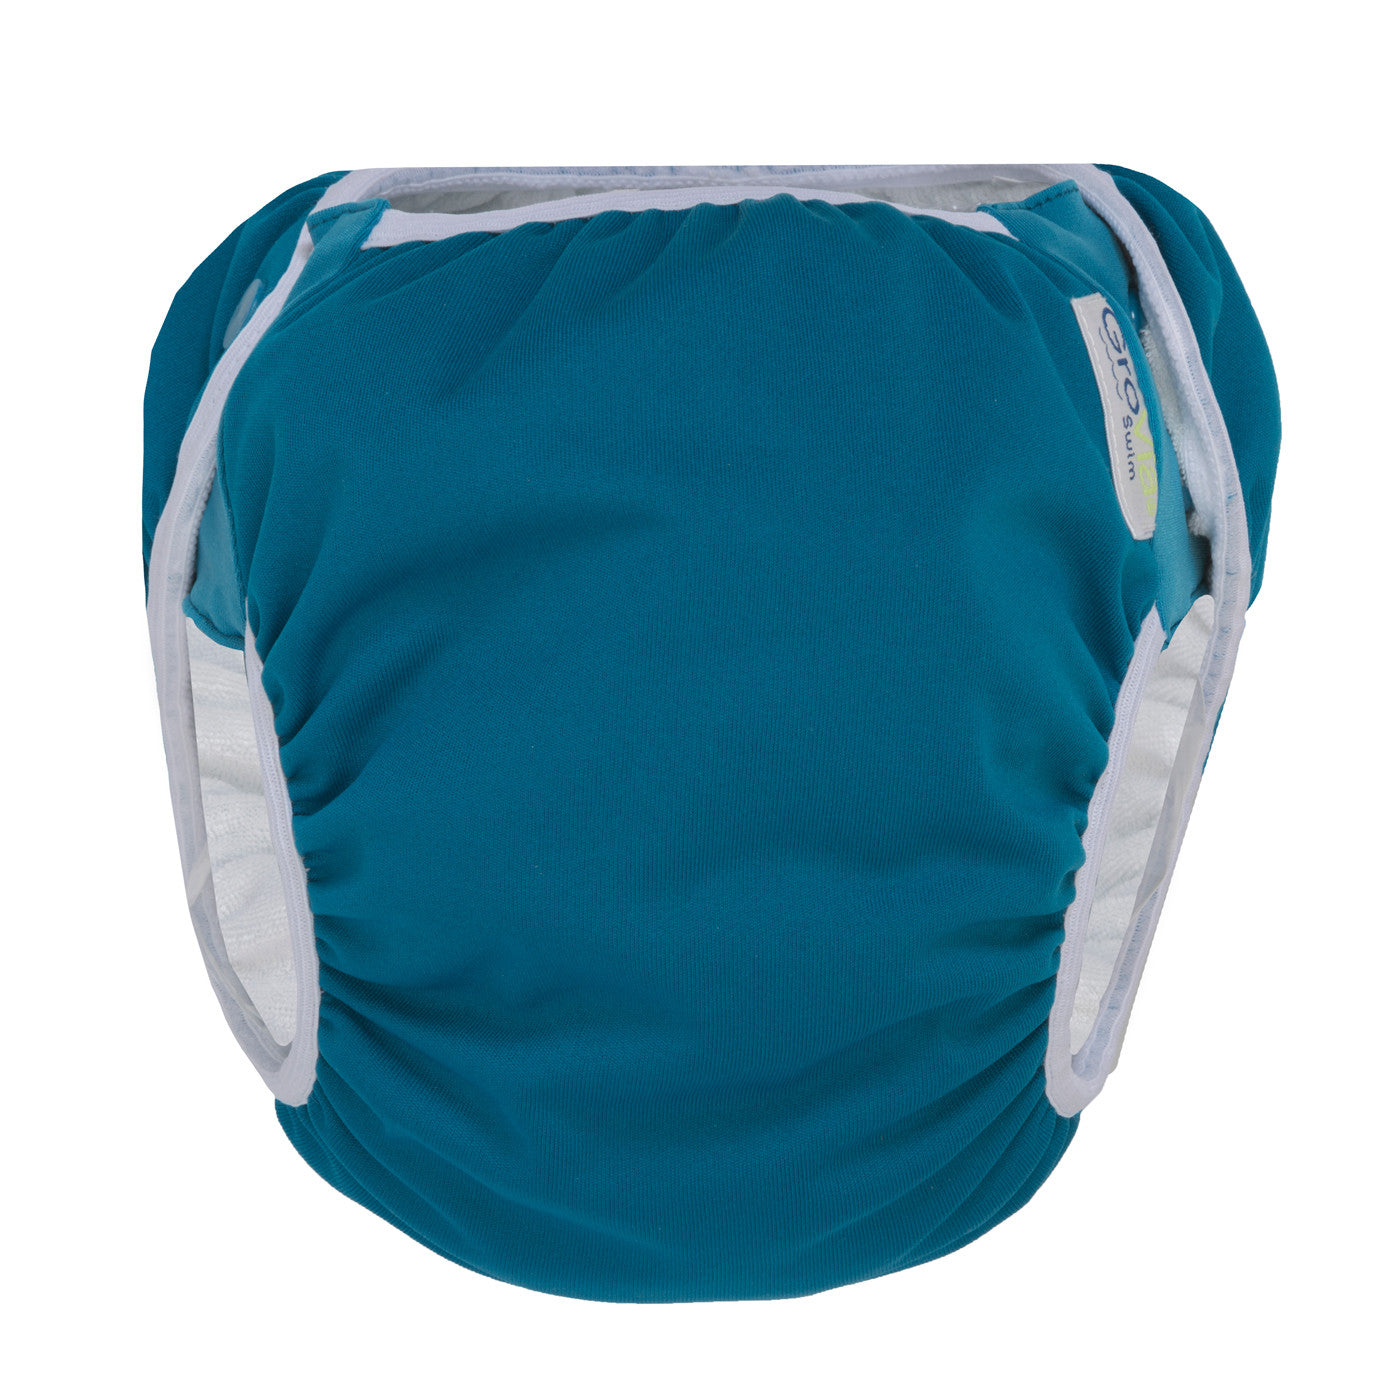 Abalone Swim Diaper - Crunch Natural Parenting is where to buy